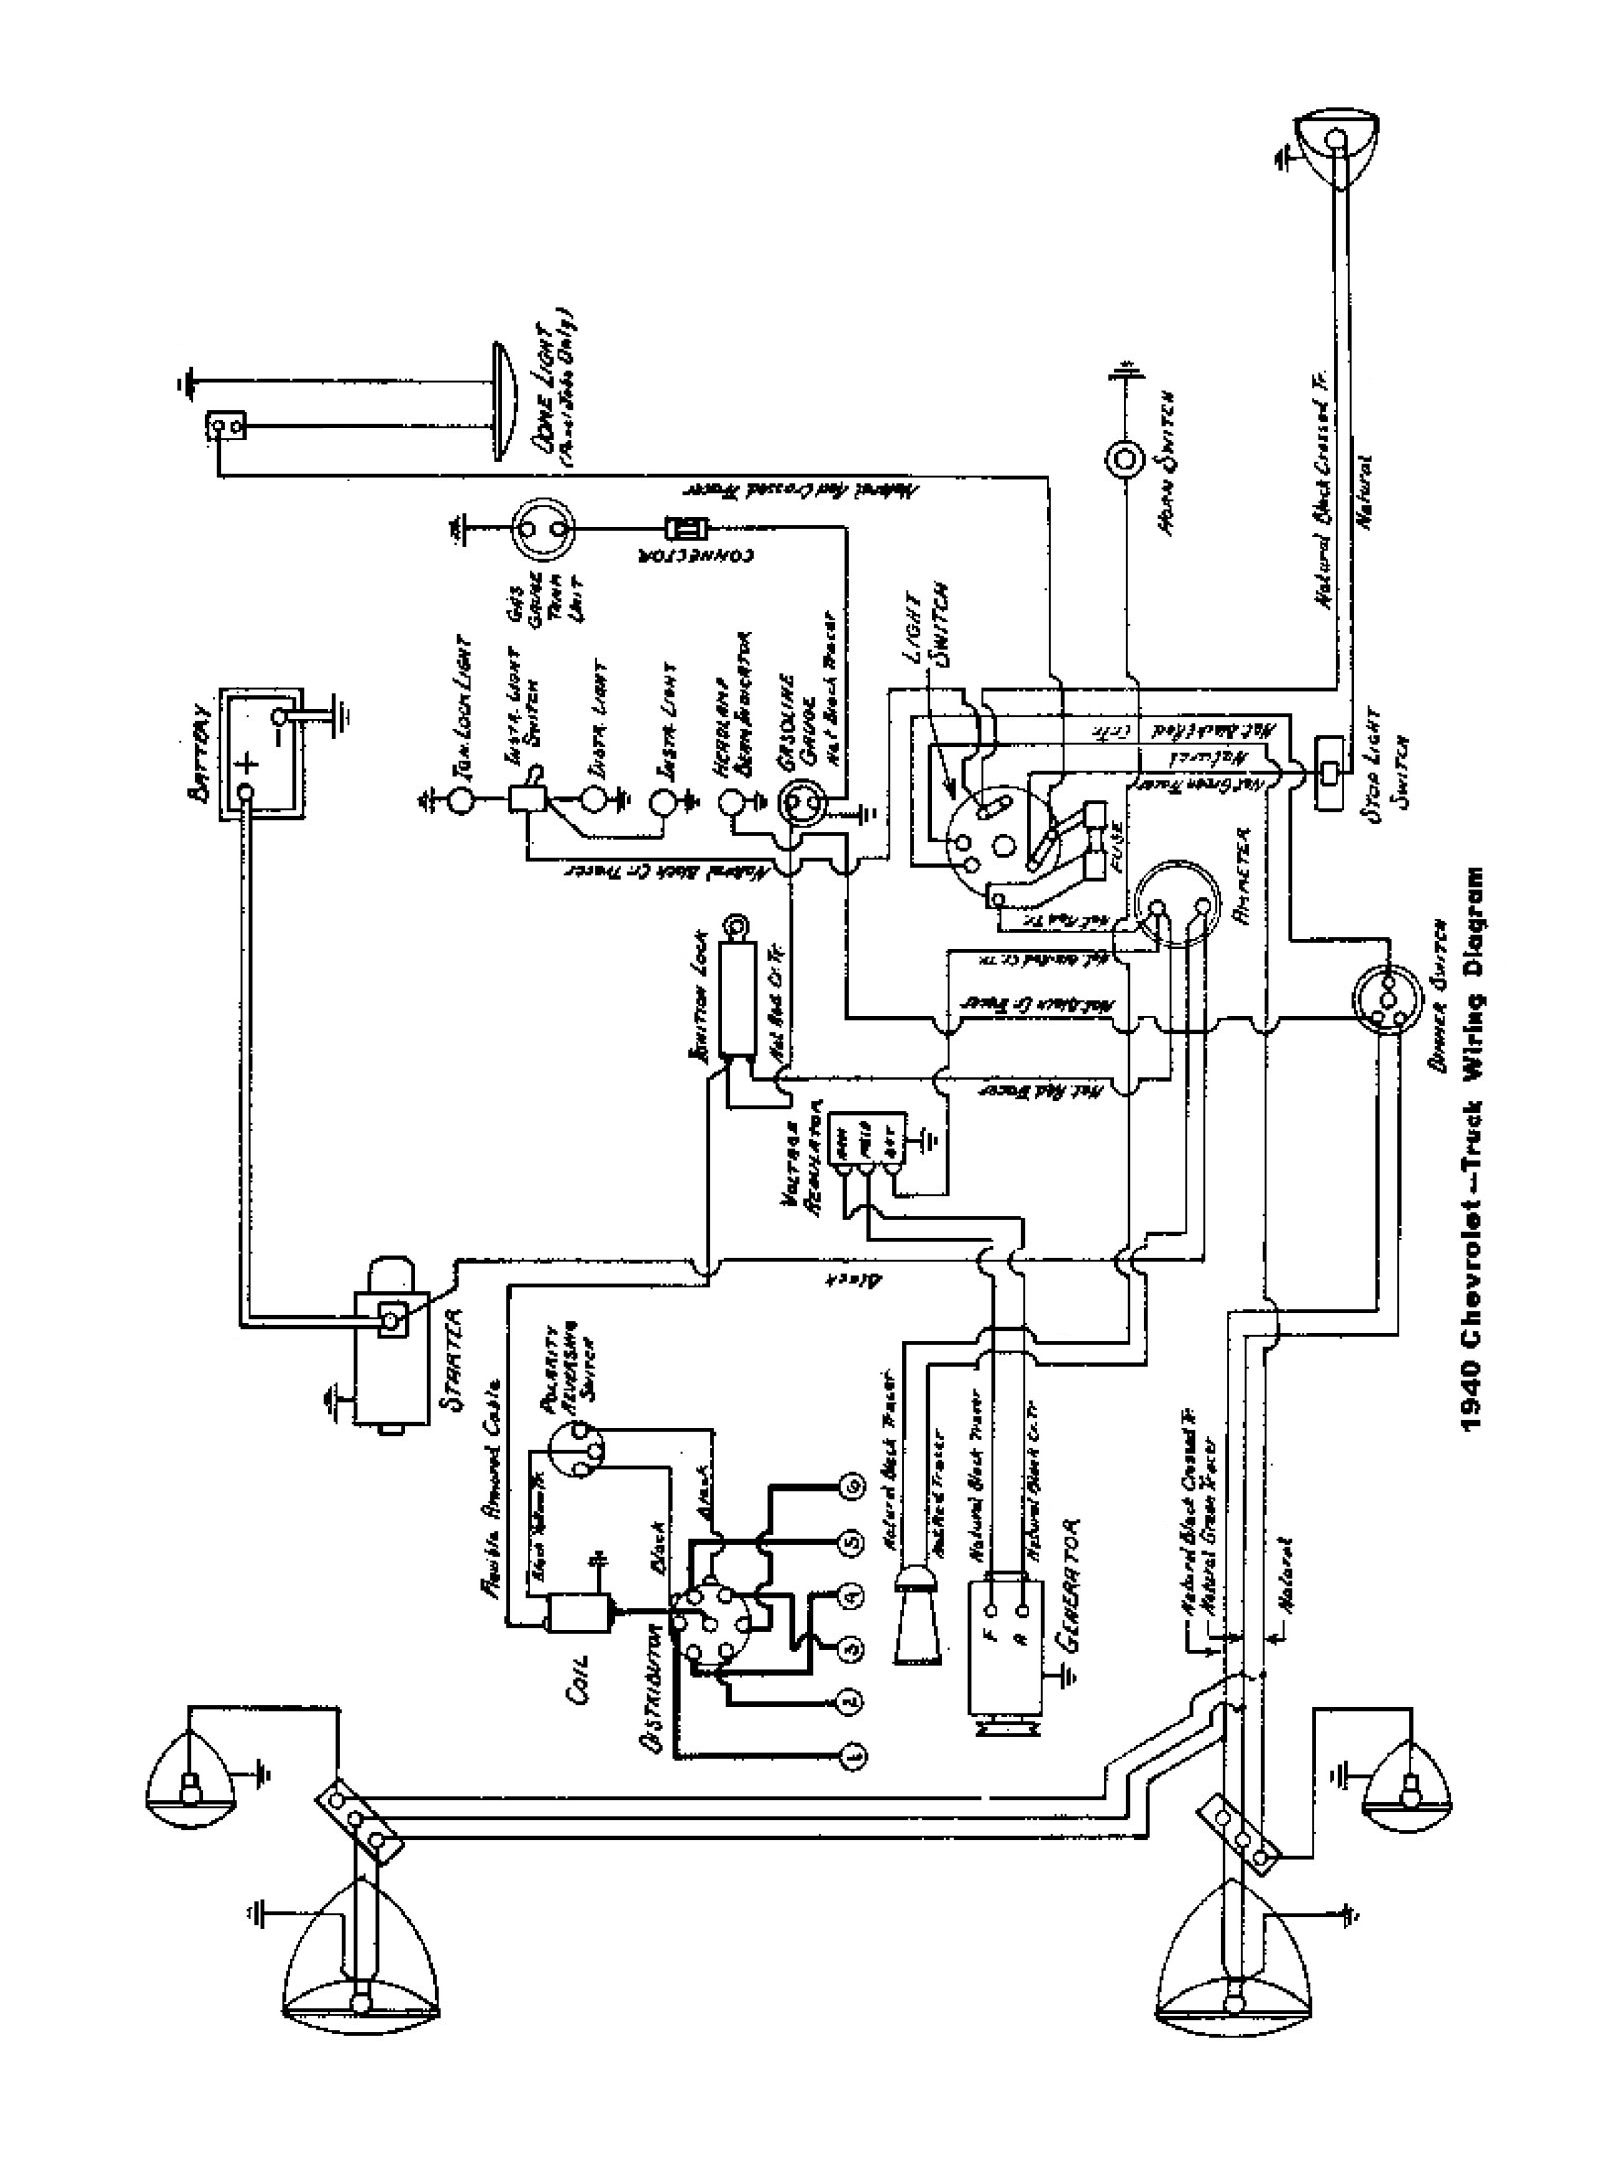 1955 pontiac wiring diagram